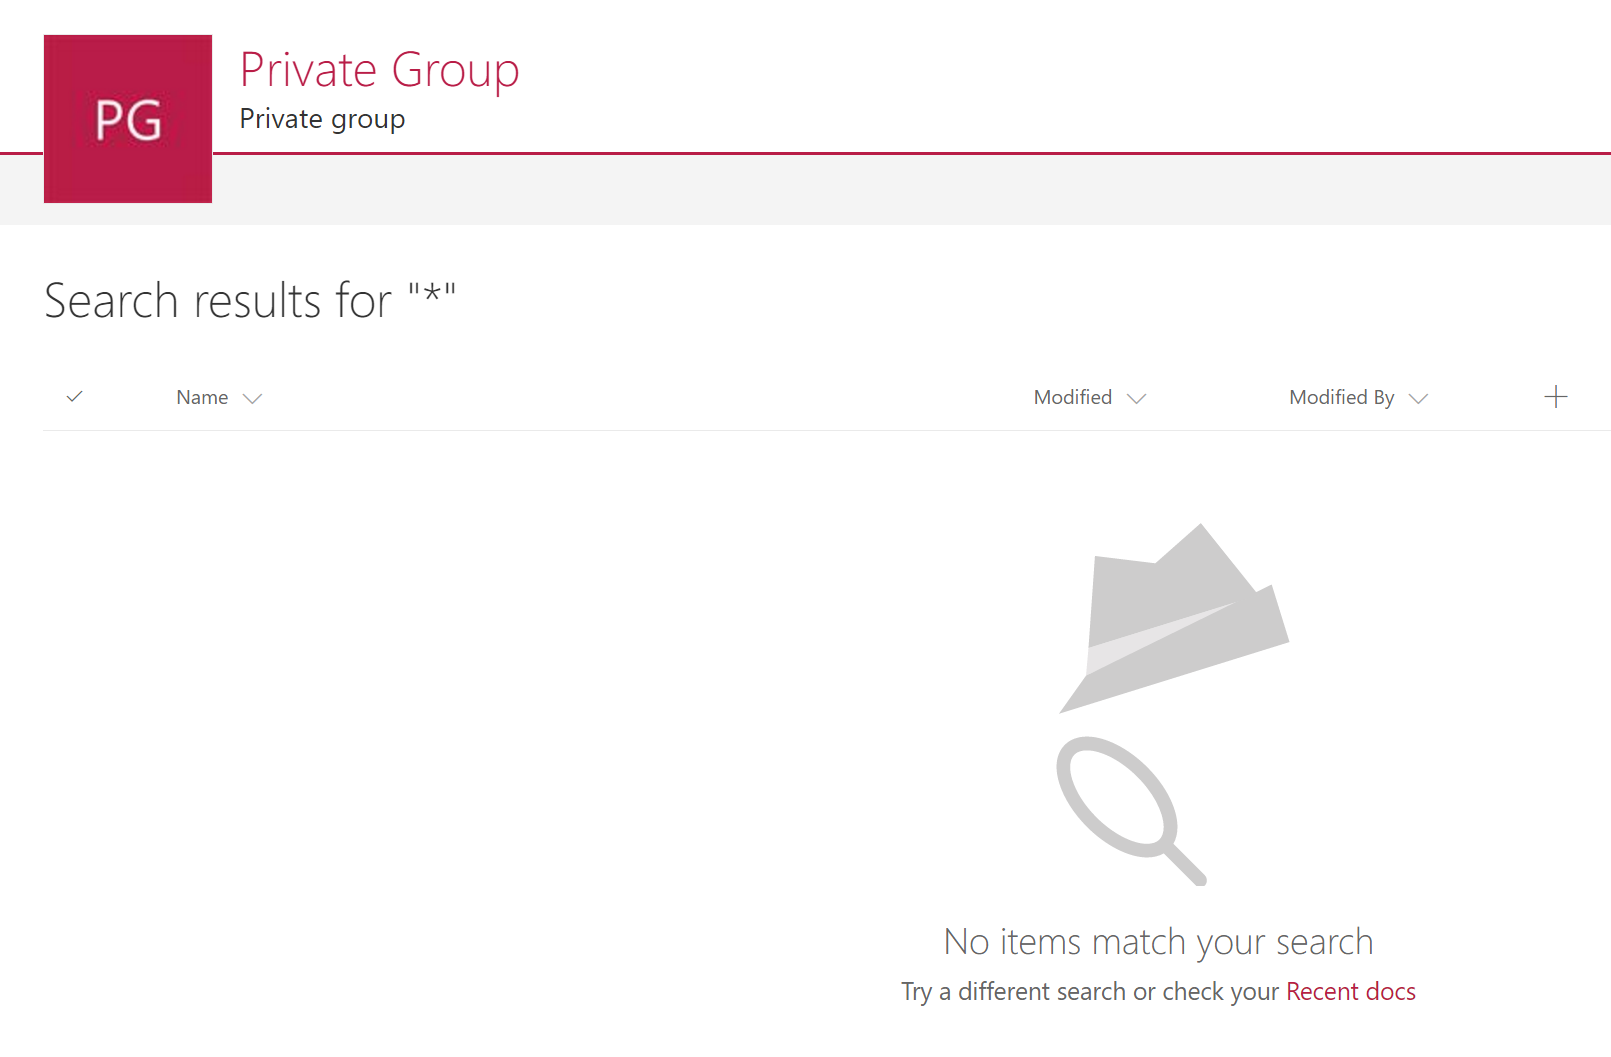 Private group search